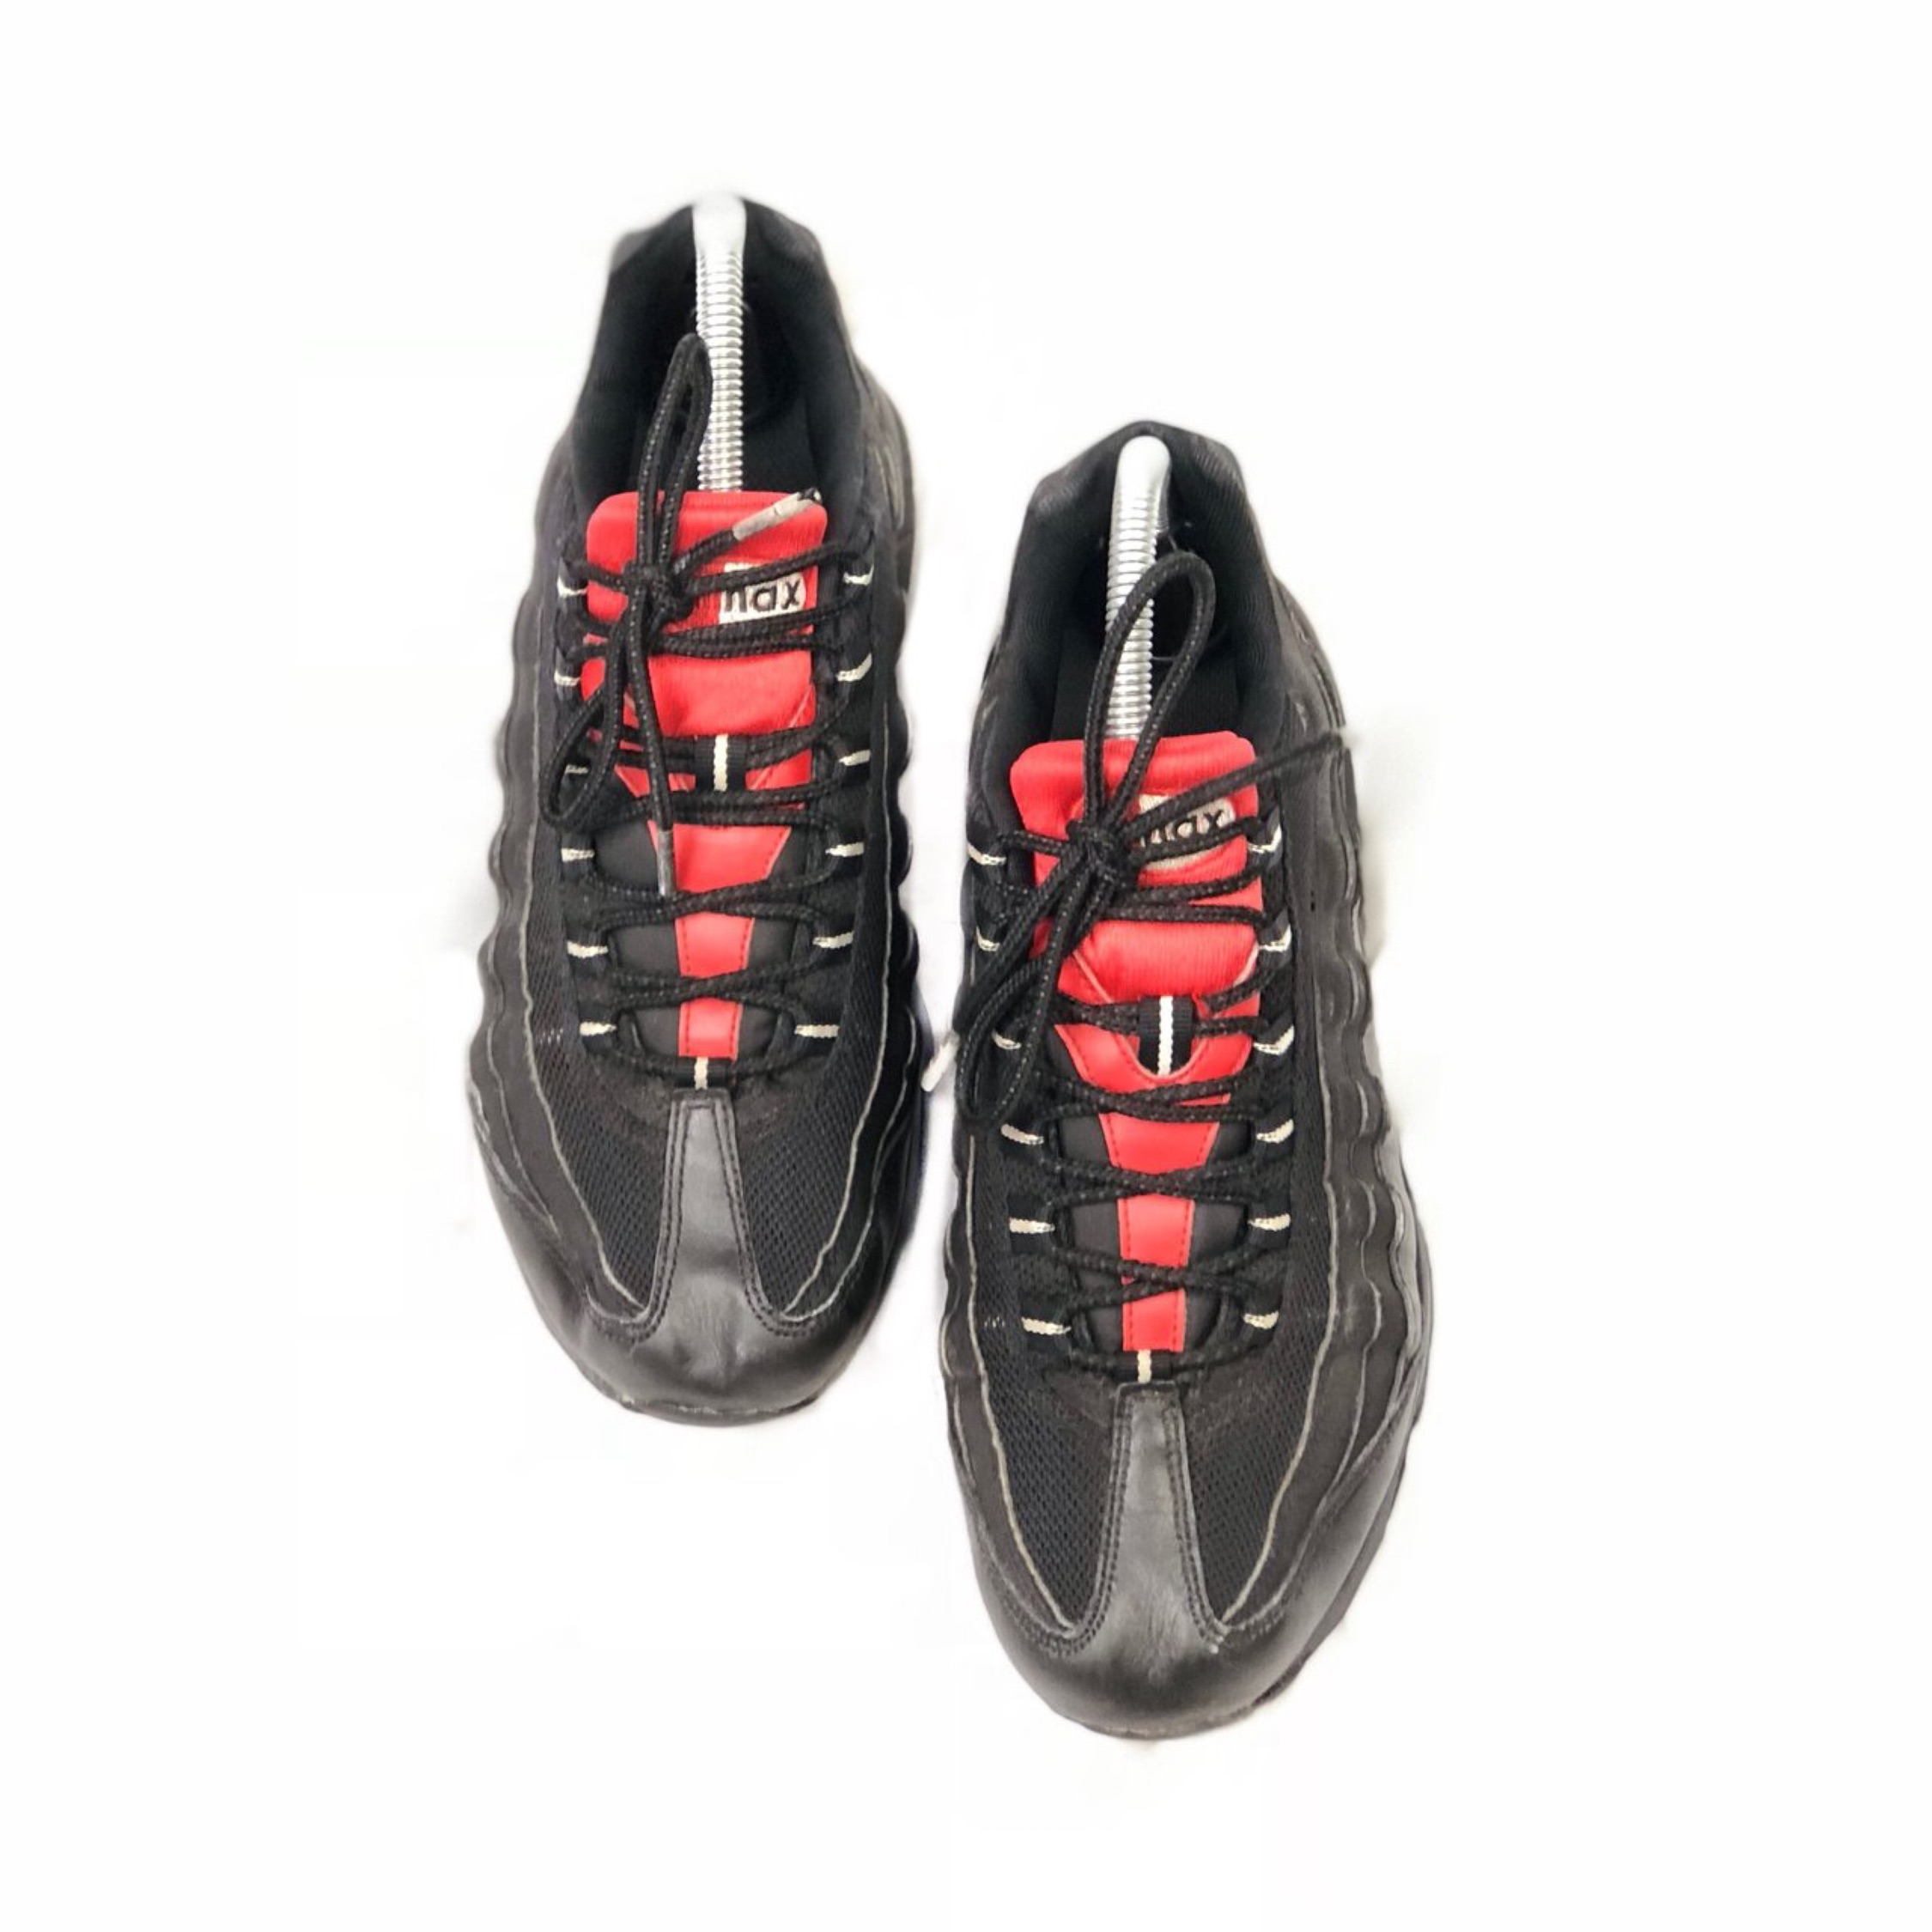 Chilli Nike Air Max 95S 110S Size Uk6 Unisex